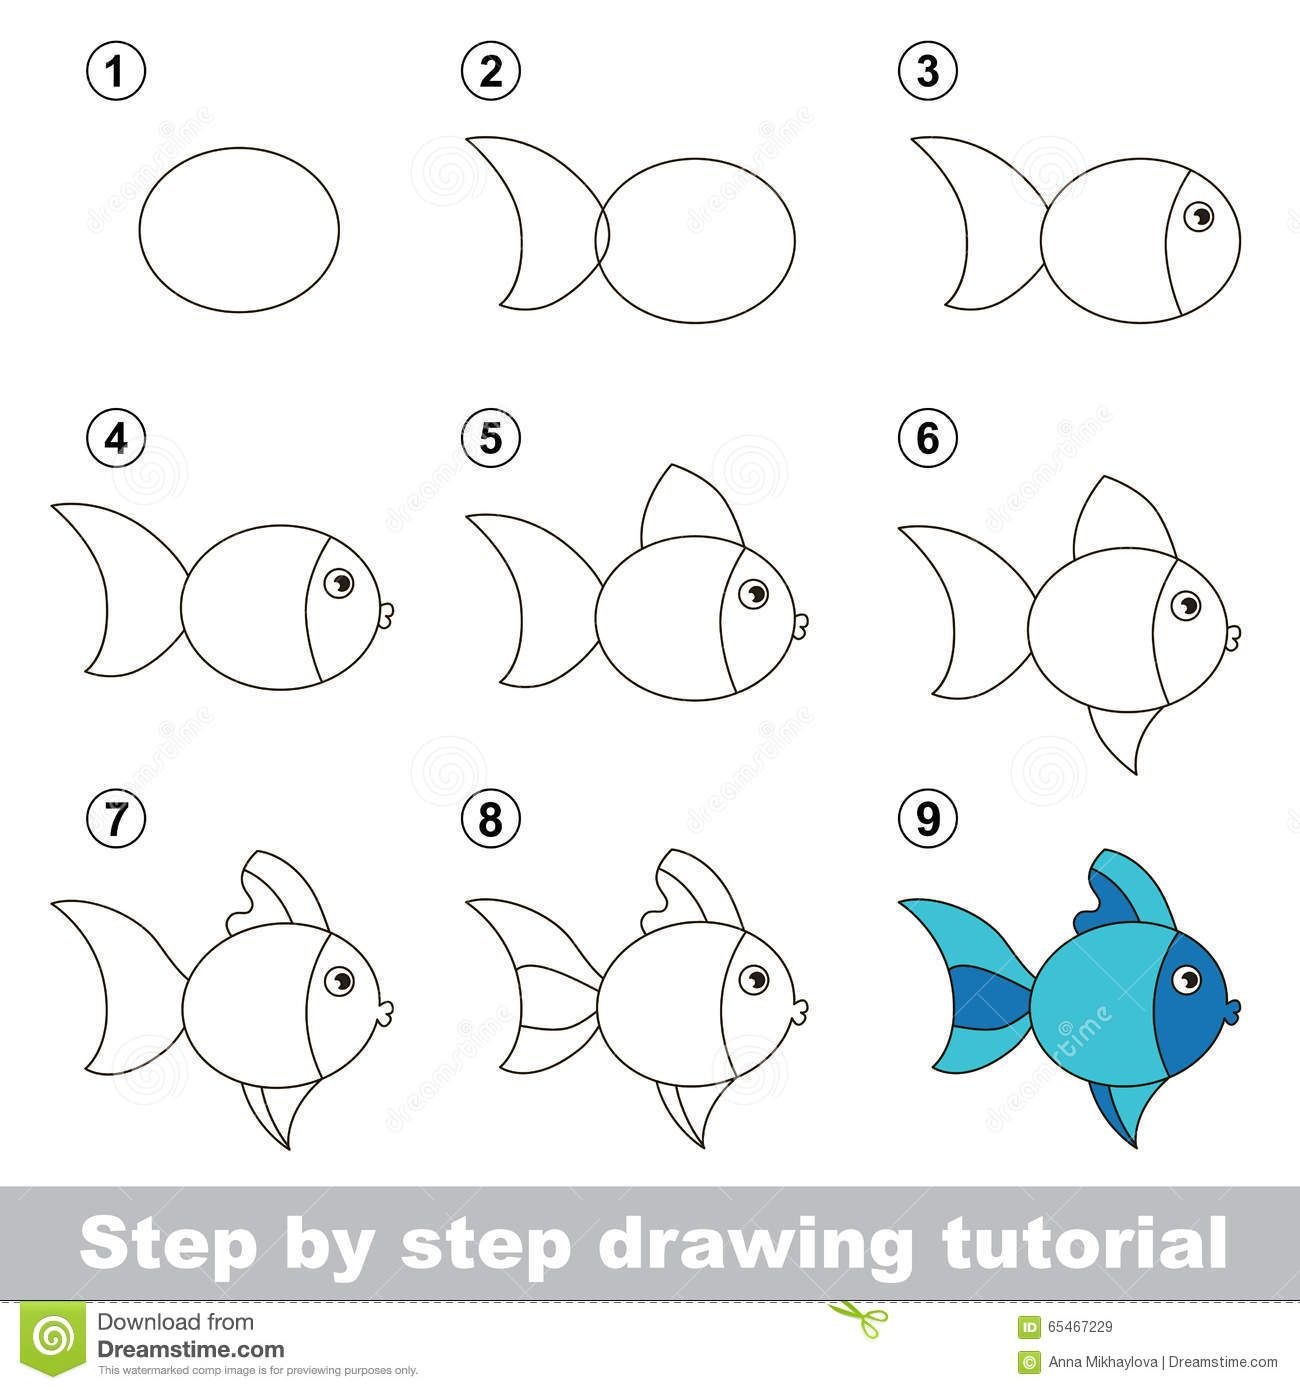 Uncategorized How To Draw A Fish Step By Step For Kids drawing tutorial how to draw a cute fish download from over 55 million high